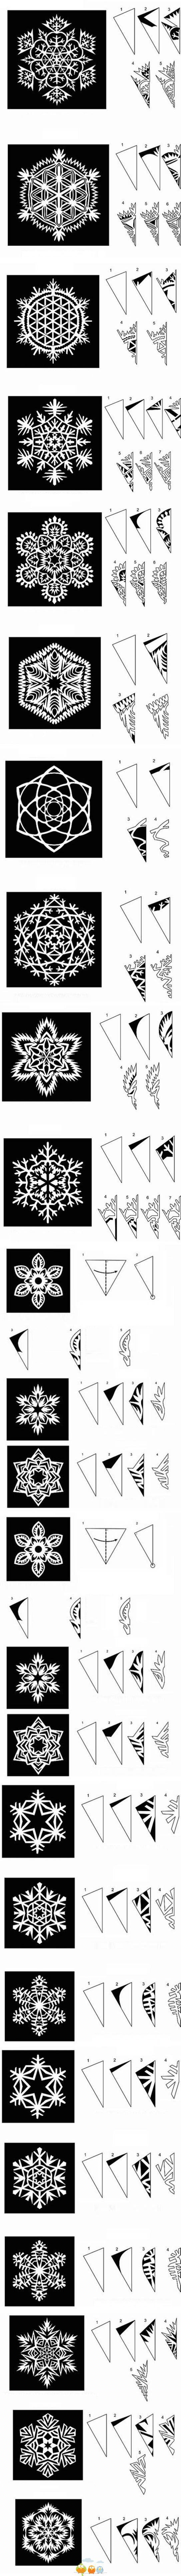 723 best snowflakes images on Pinterest | Paper snowflakes, Paper ...